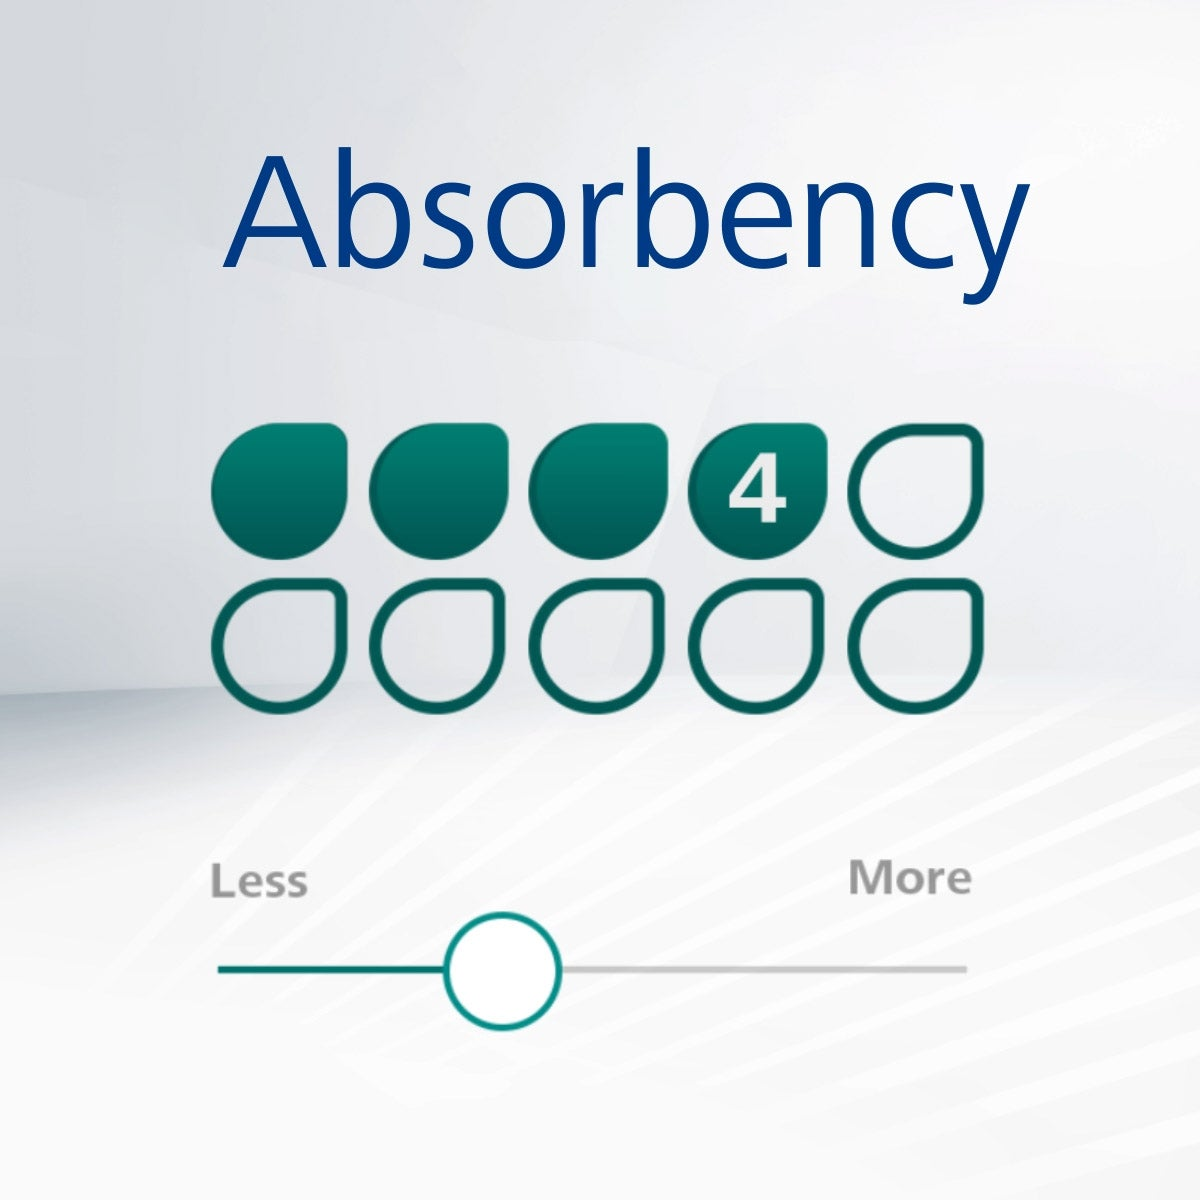 Check you have the right absorbency level